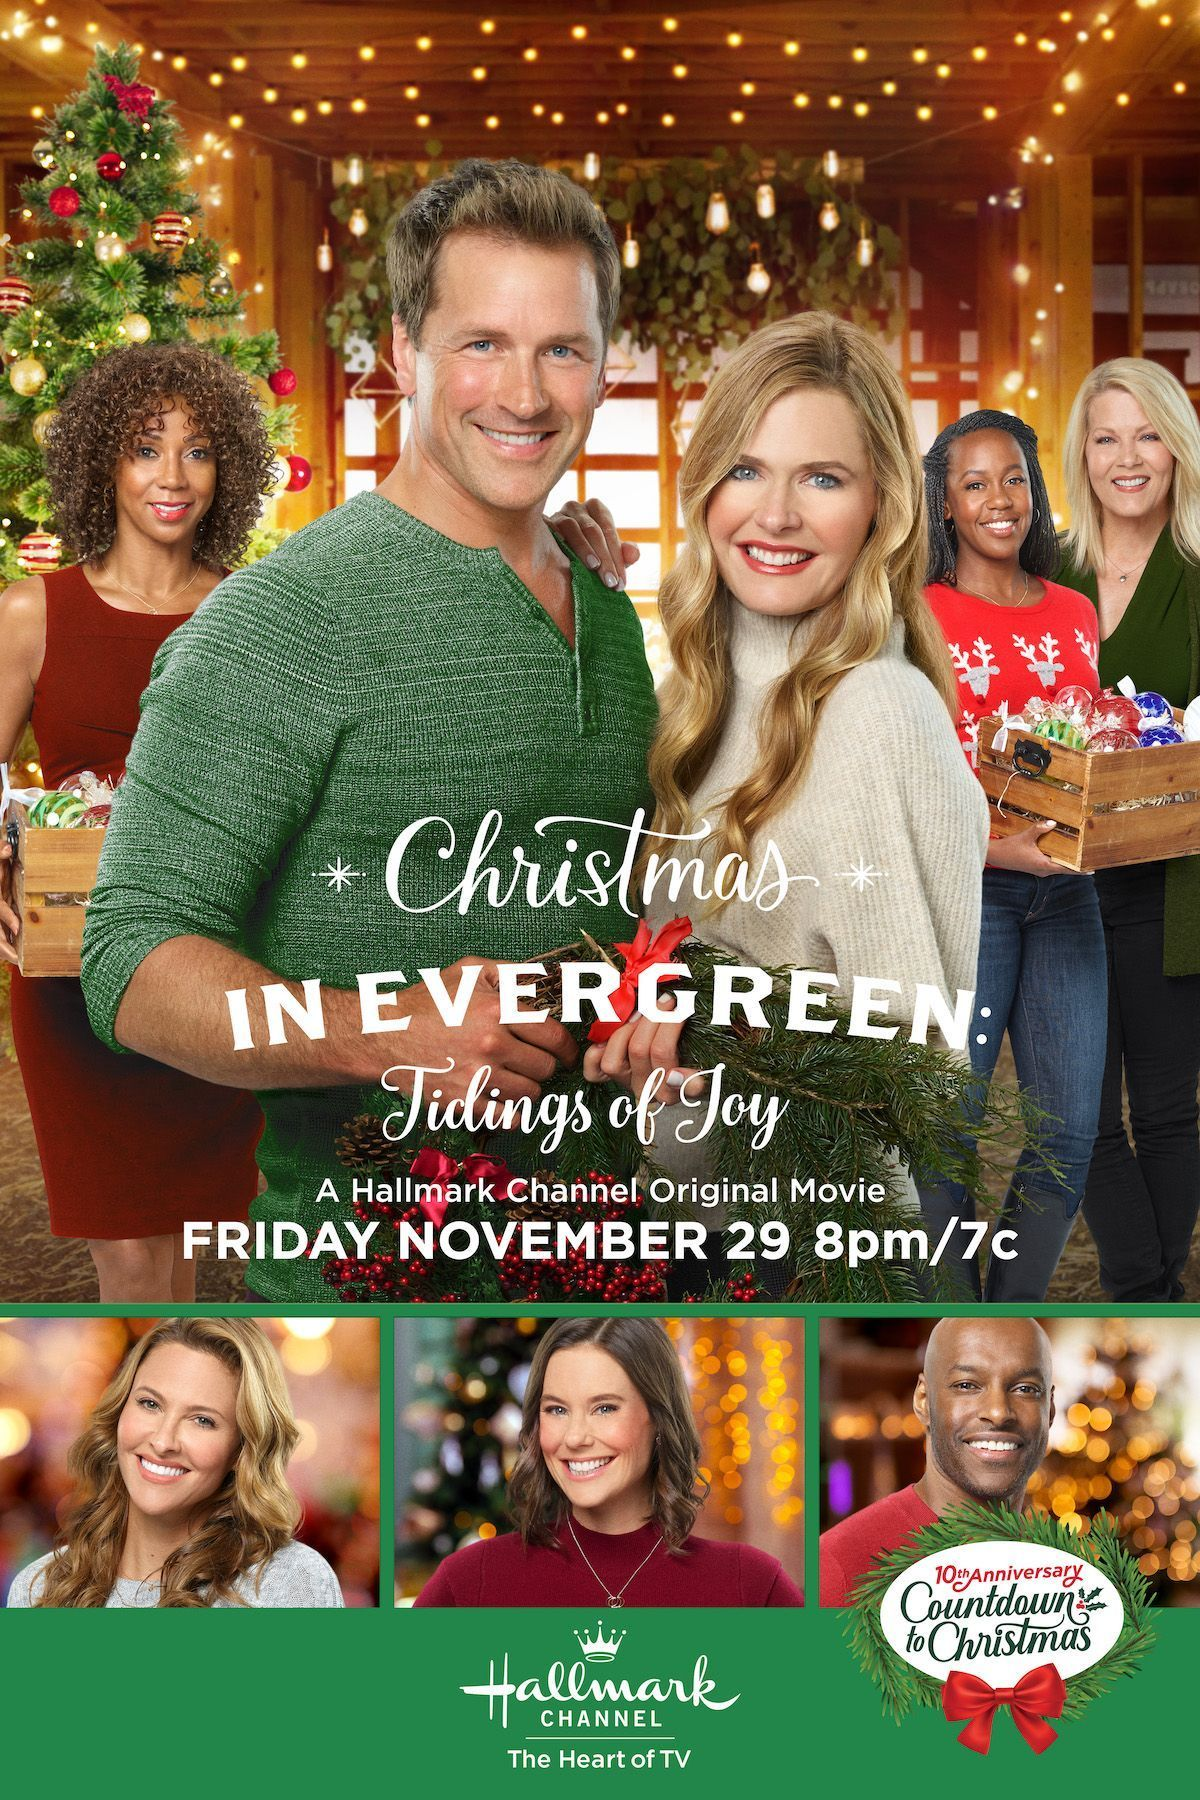 Paul Greene And Maggie Lawson When Calls The Heart Join The All Star Cast Hallmark Channel Christmas Movies Hallmark Movies Romance Hallmark Christmas Movies